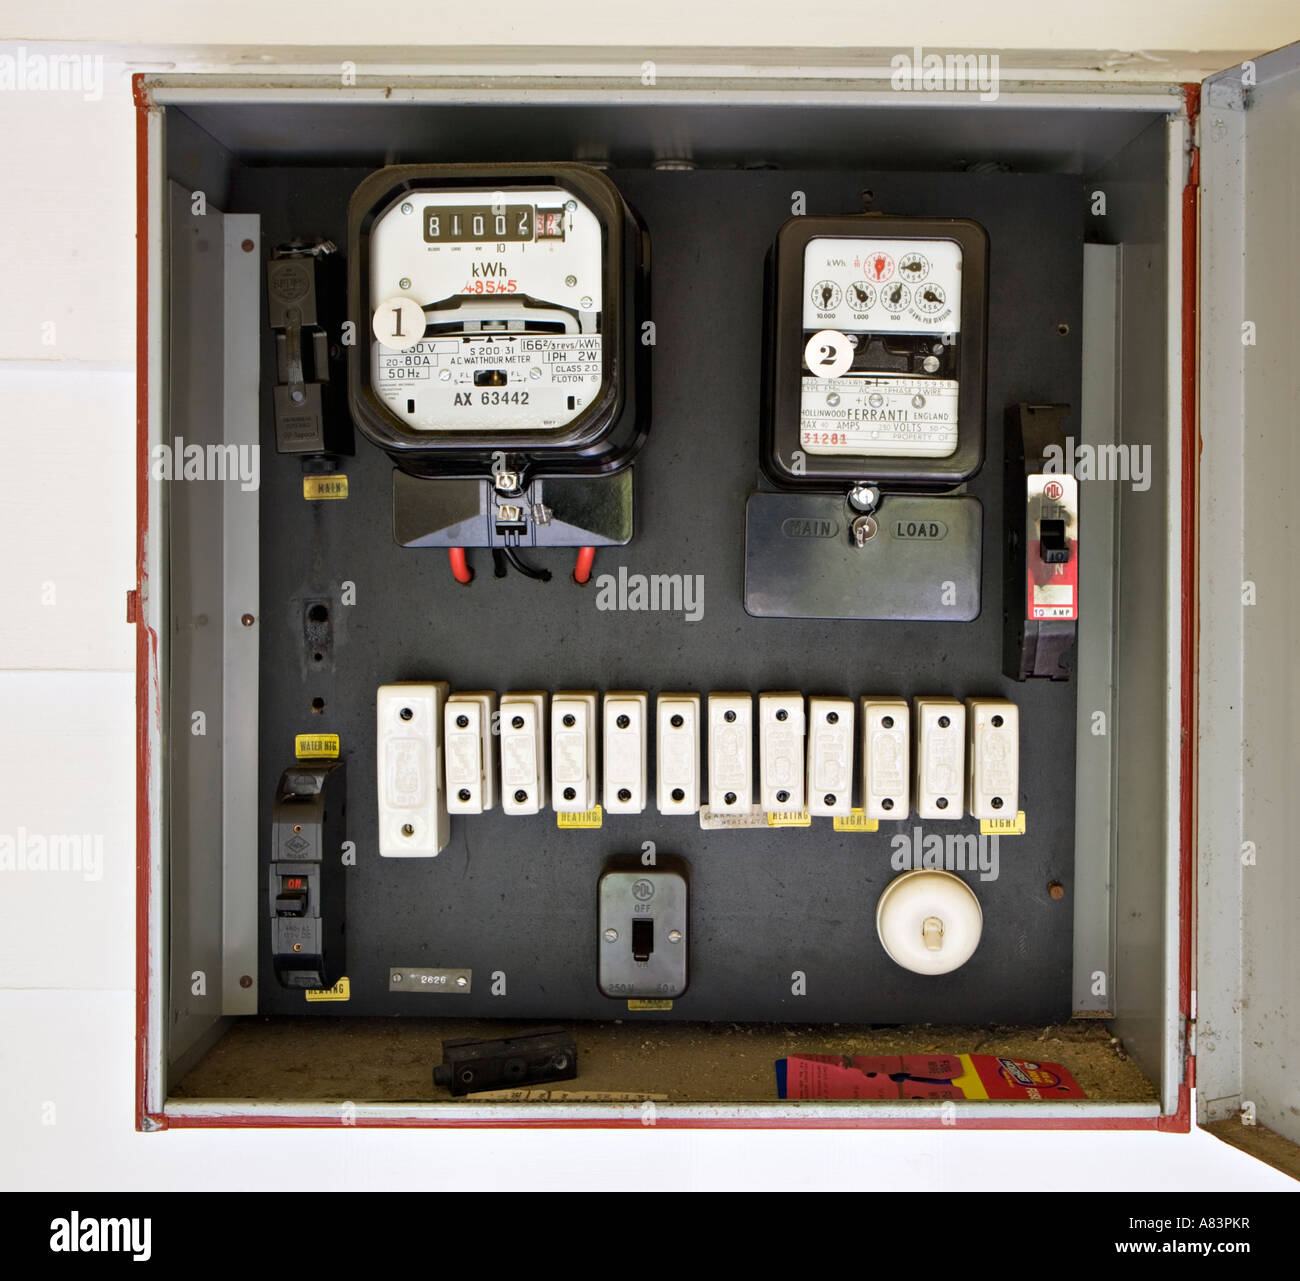 Home Electrical Fuse Box Manual E Books Circuit Diagram Wallpaper Wiring Modern Panel Upgrade Service Boxelectric Meter Stock Photos Electric Images